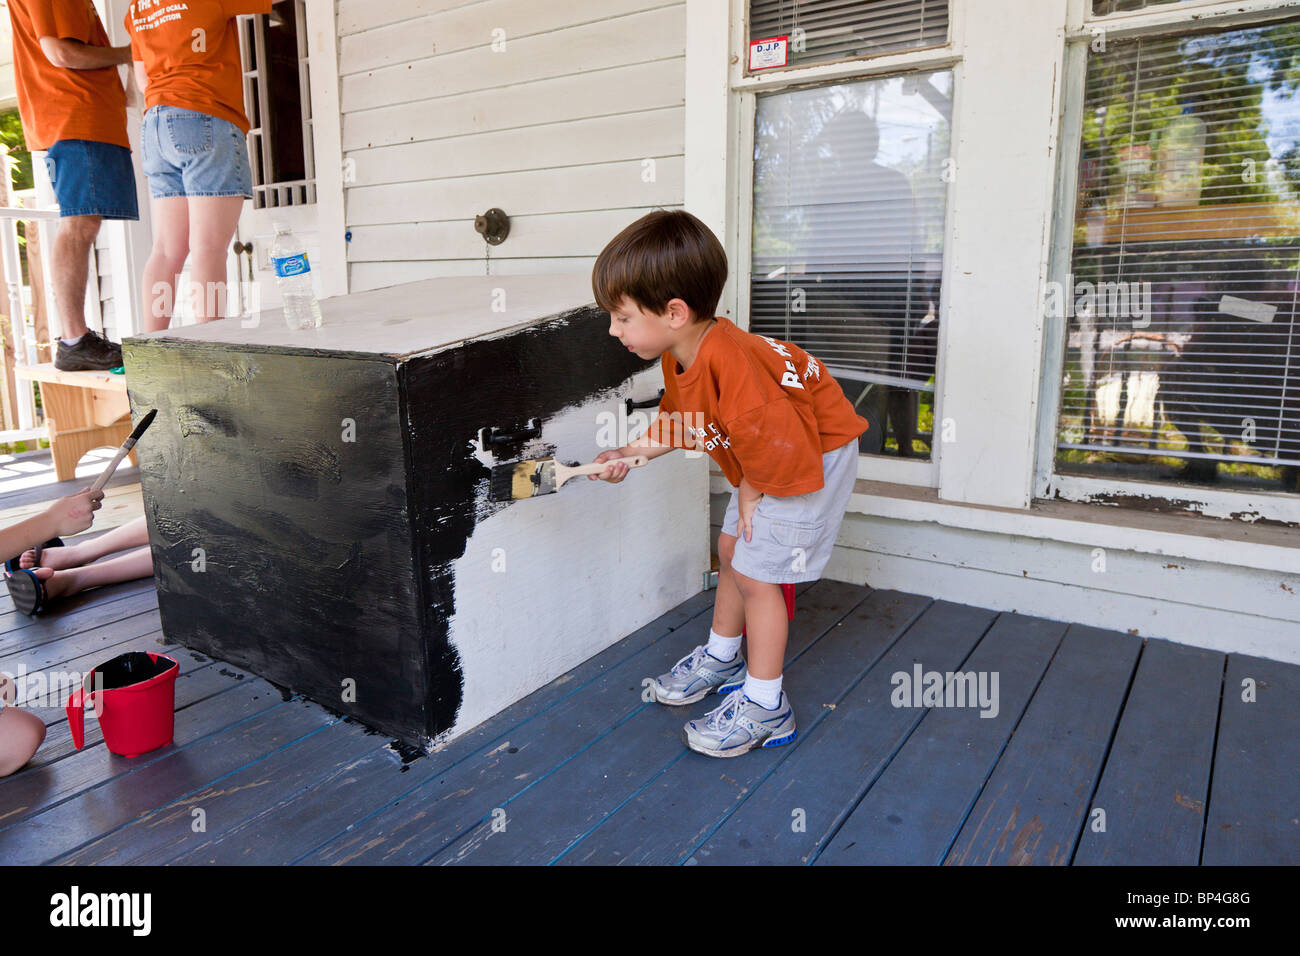 Young boy painting to help members of First Baptist Church provide community service during Be The Church outreach - Stock Image